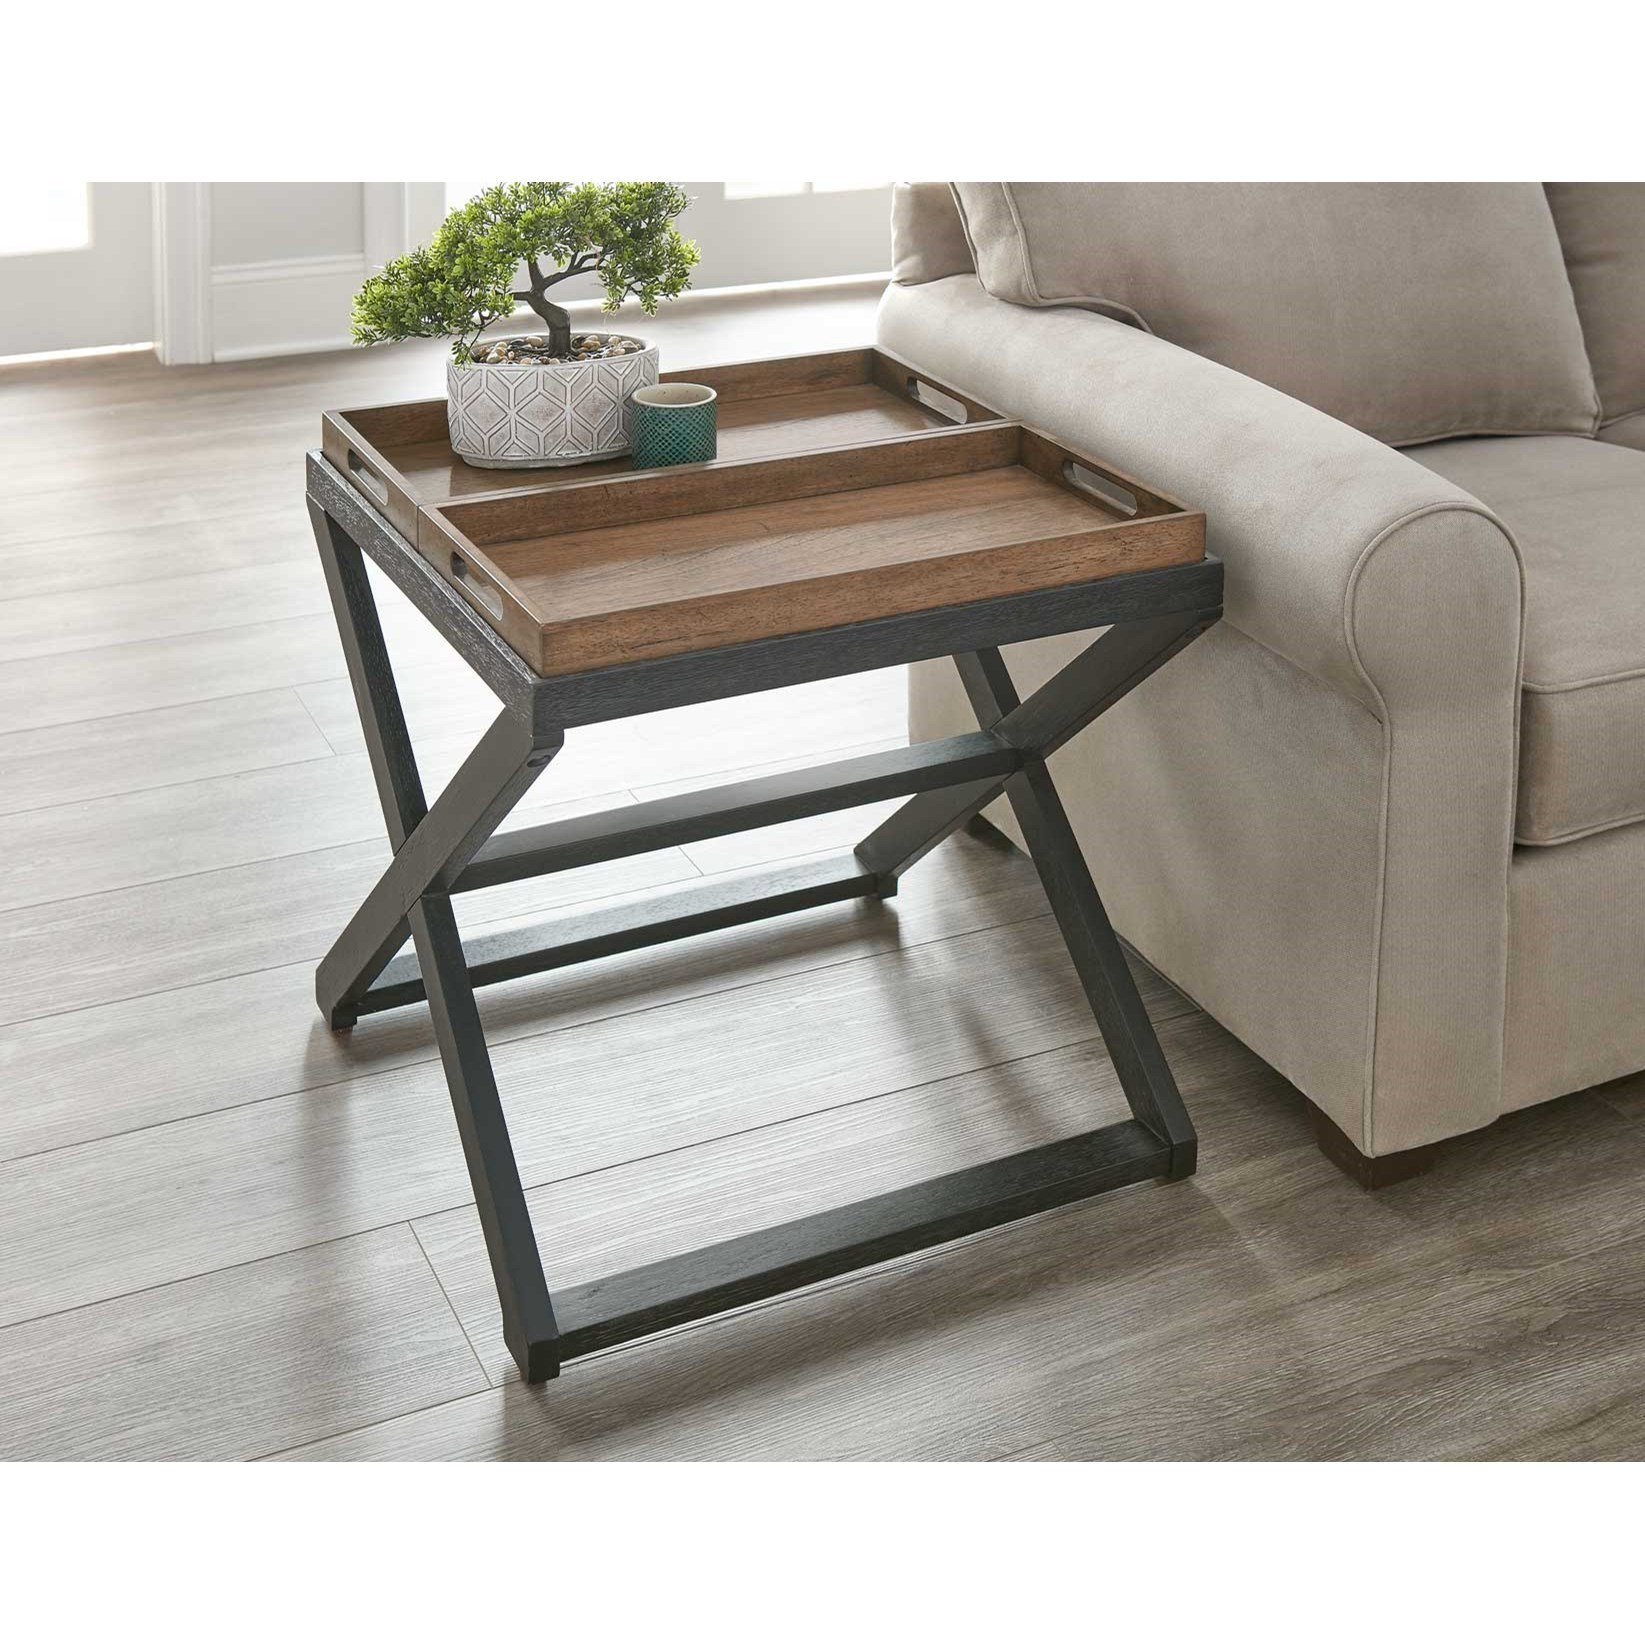 Topeka End Table by Steve Silver at Walker's Furniture